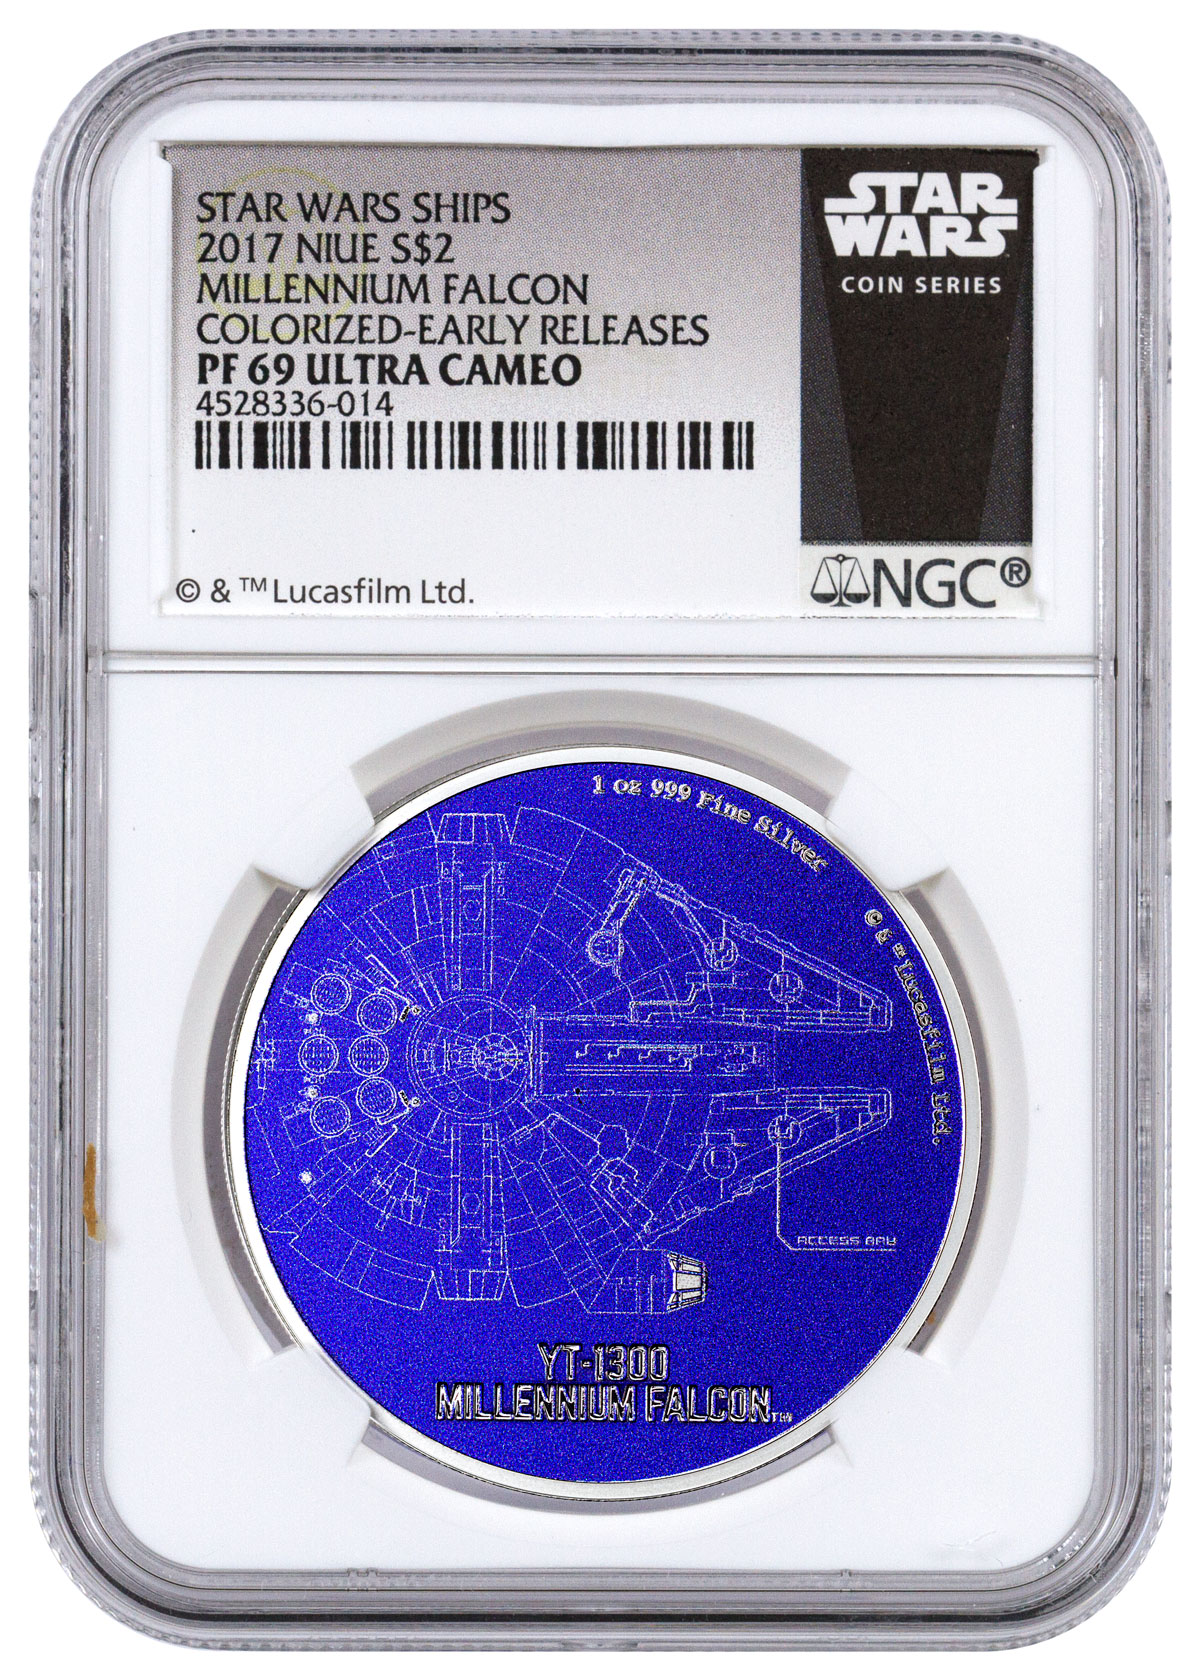 2017 Niue Star Wars Ships - Millennium Falcon 1 oz Silver Colorized Proof $2 Coin NGC PF69 UC ER (Exclusive Star Wars Label)